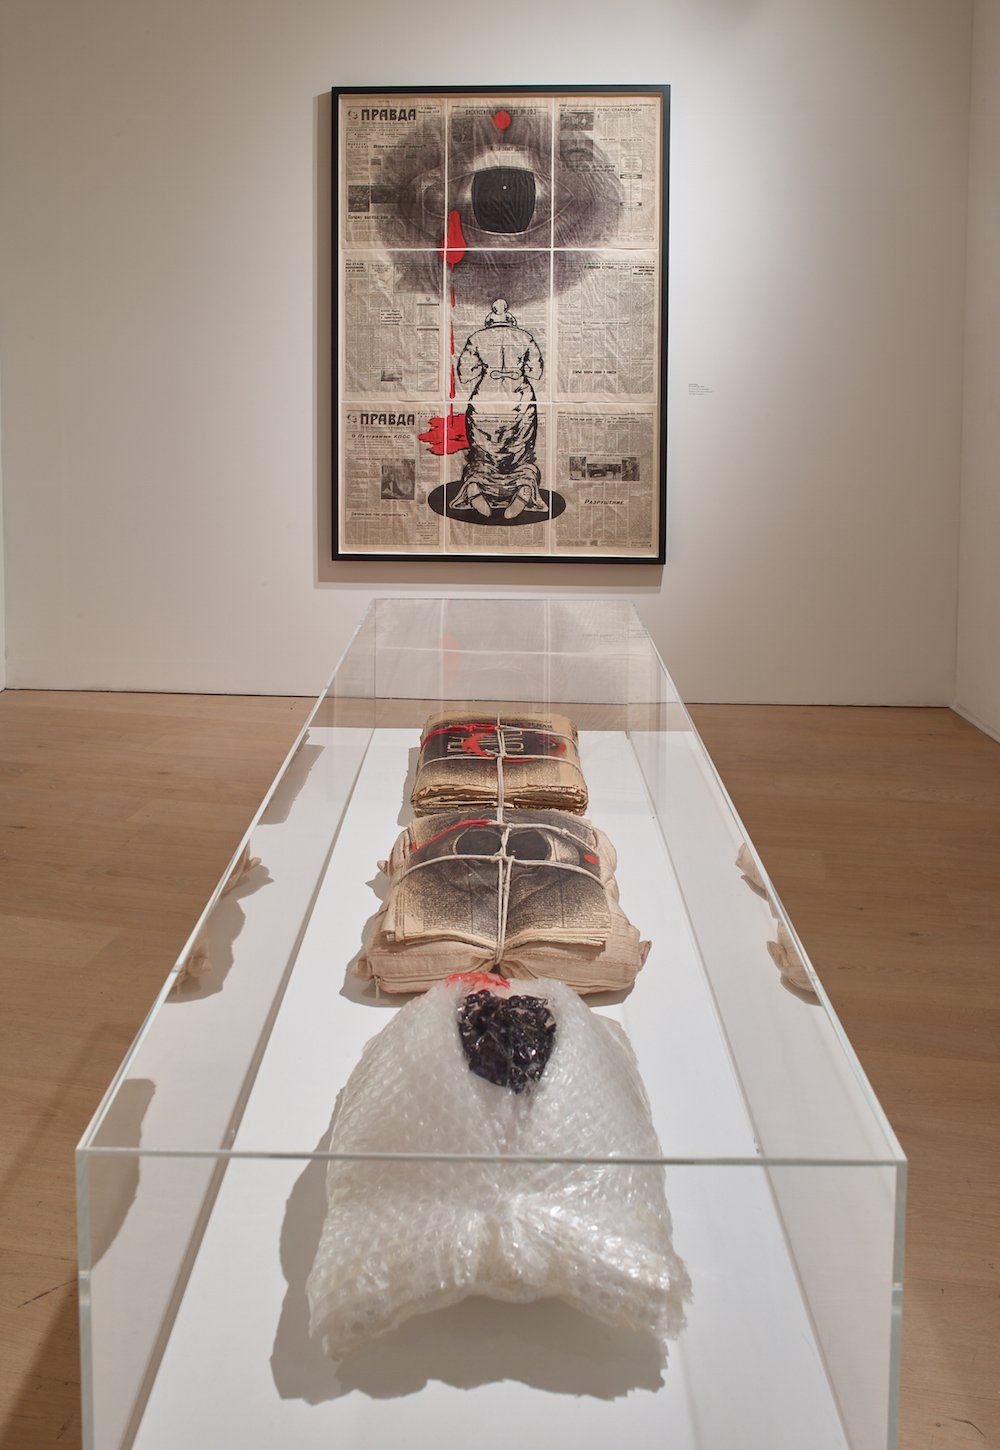 <em>Pack</em>(1992), <em>The Pillow and the Eye</em> (1992)  and <em>The Eye</em> on display at Calvert 22 Space. Image: Stephen White